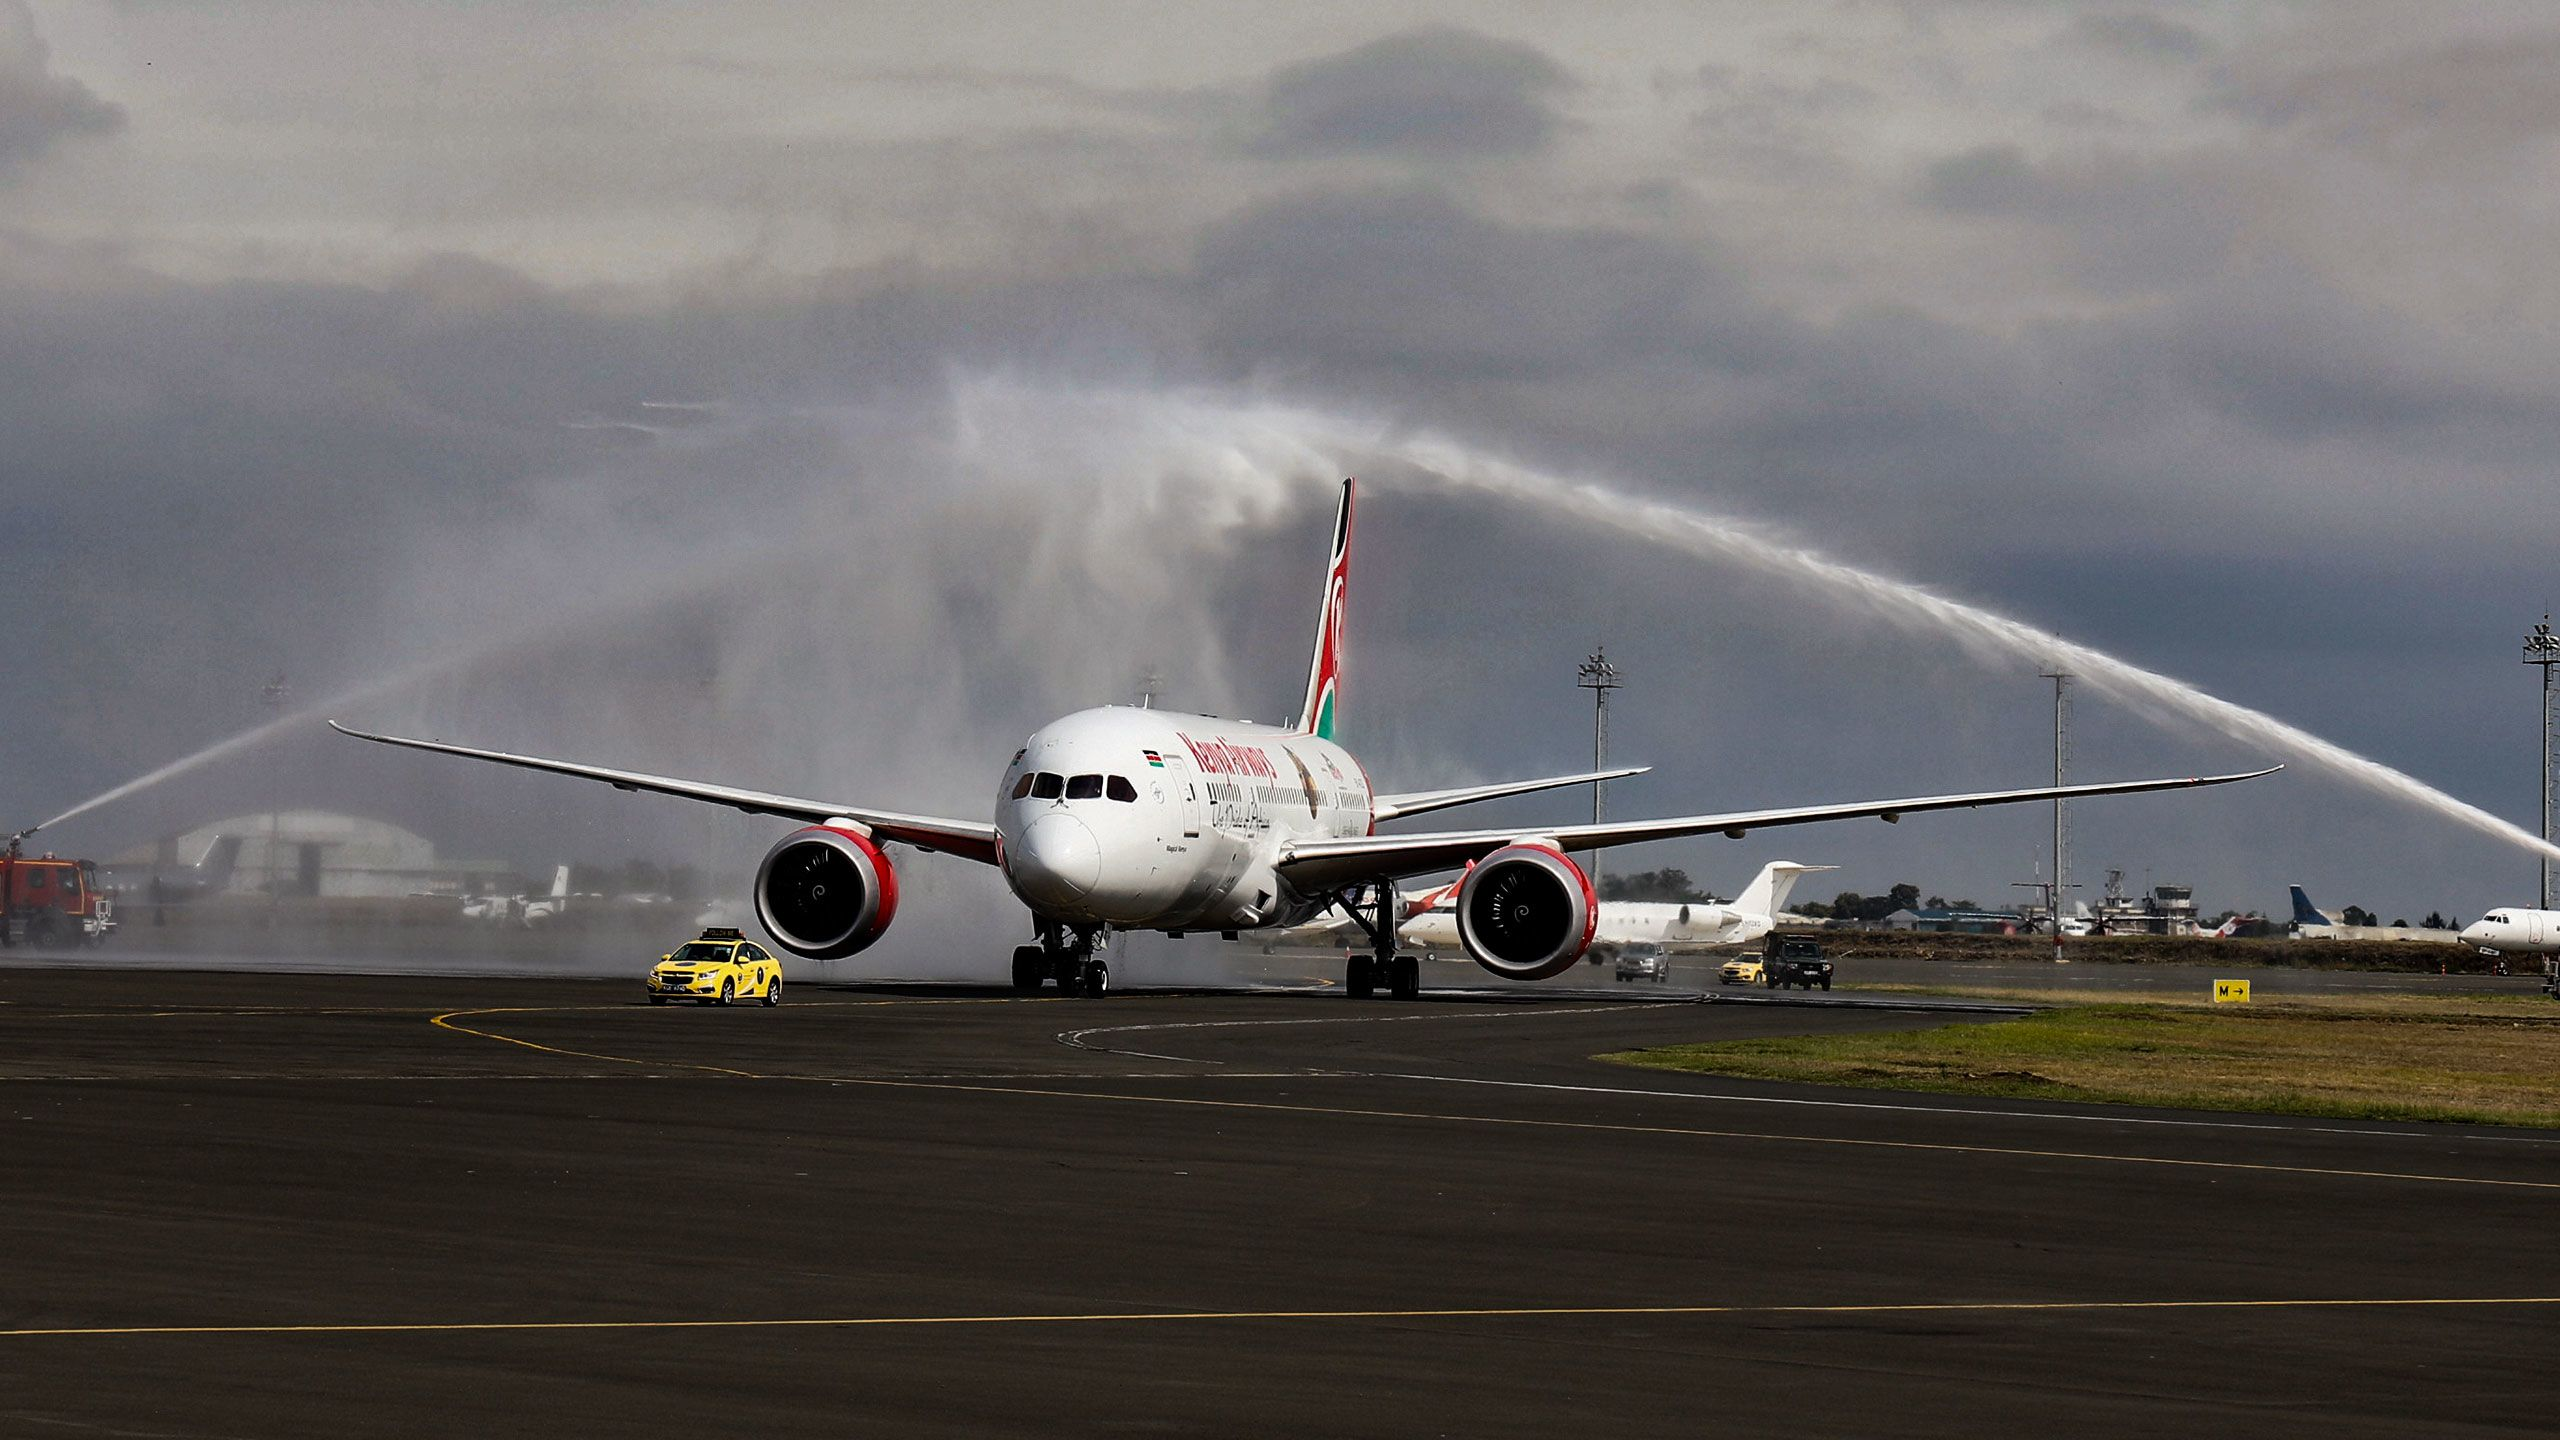 Kenya Airways' Boeing 787 Dreamliner after landing at the airport. Photo courtesy of the Kenya Tourism Board